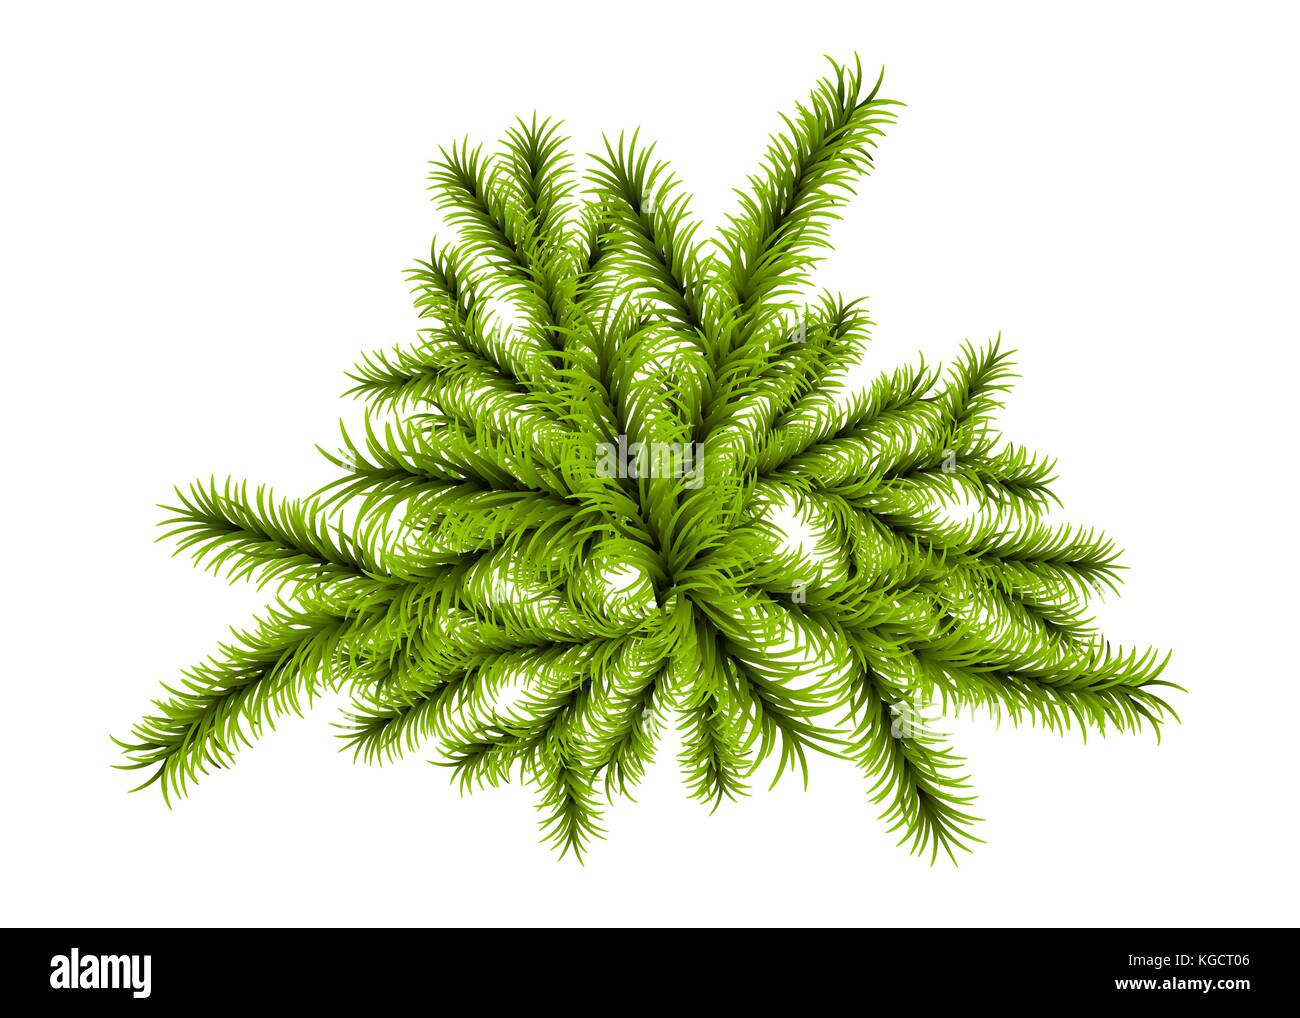 Christmas tree branch template - Stock Vector